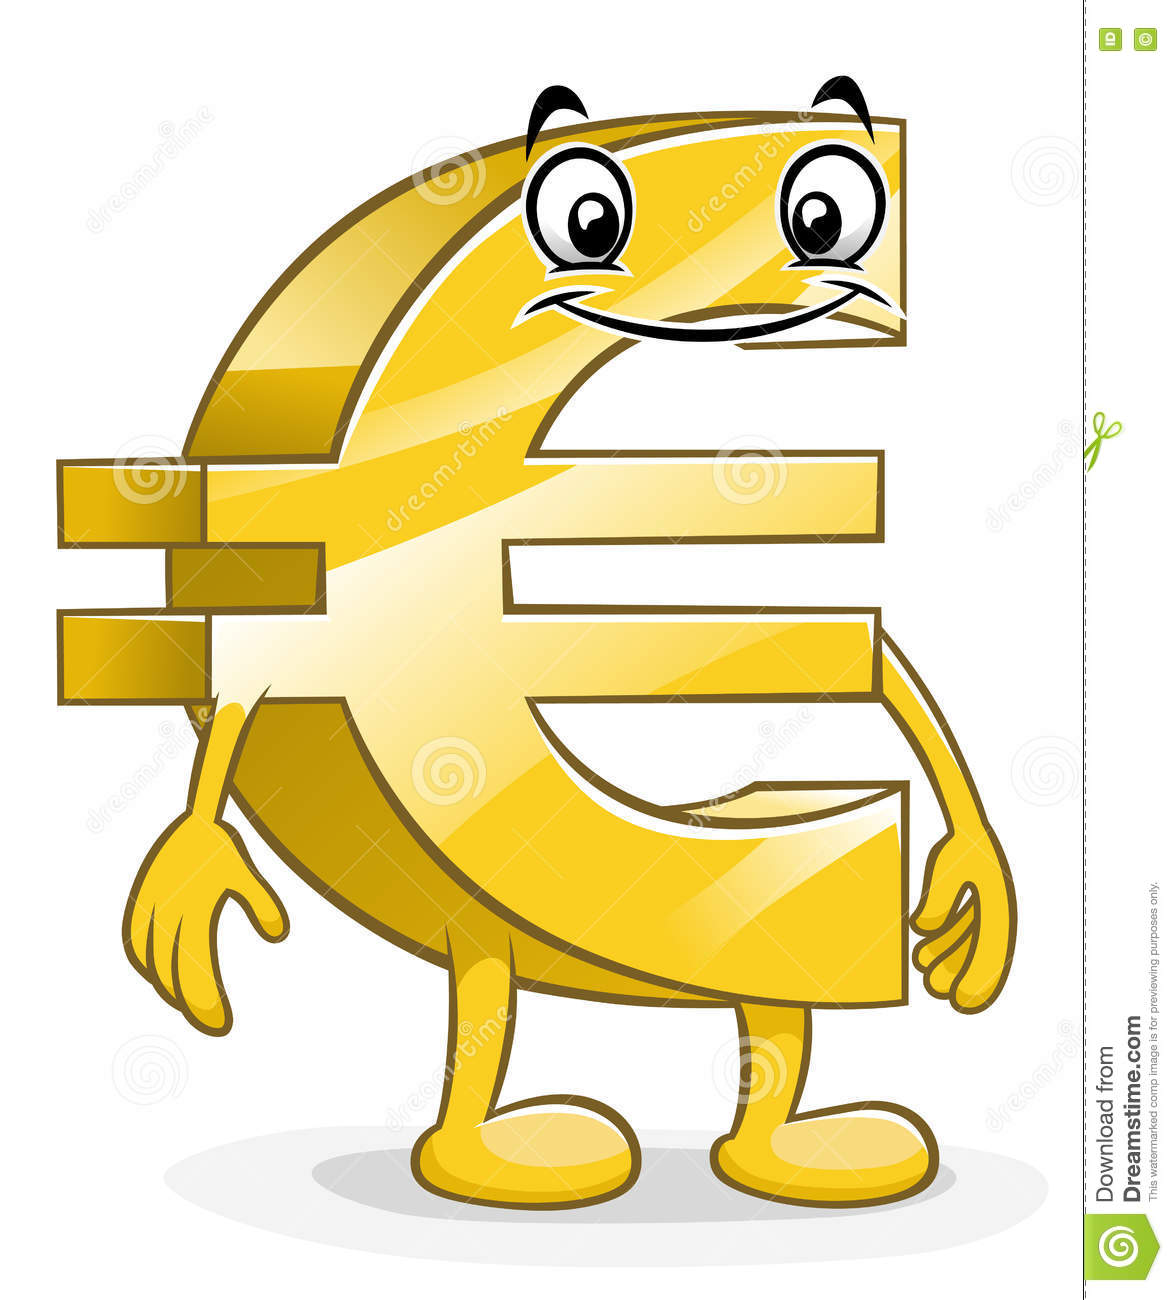 Funny Cartoon Euro Stock Vector Illustration Of Currency 71442828